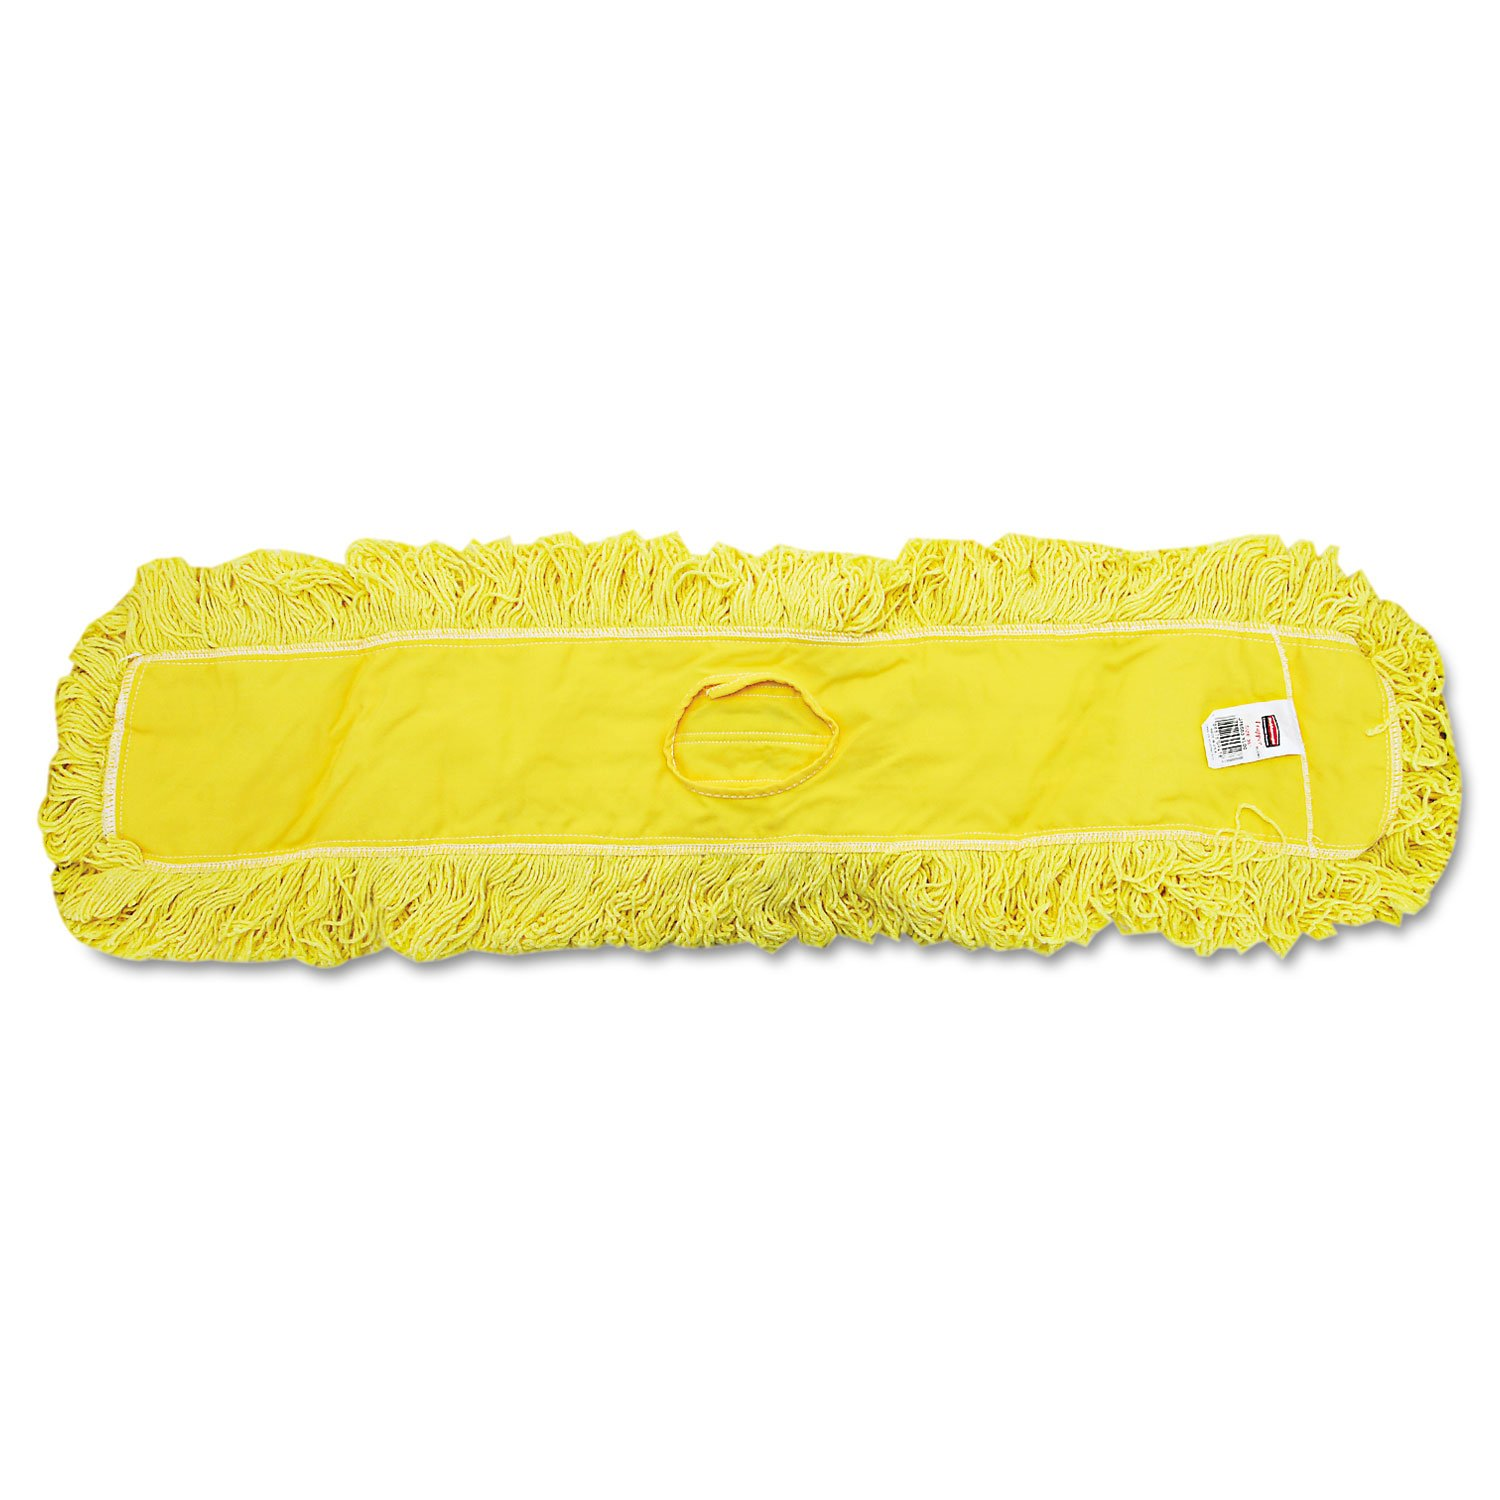 Rubbermaid Commercial Trapper Commercial Dust Mop, Looped-end, 5'' x 36'', Yellow, 12/Carton